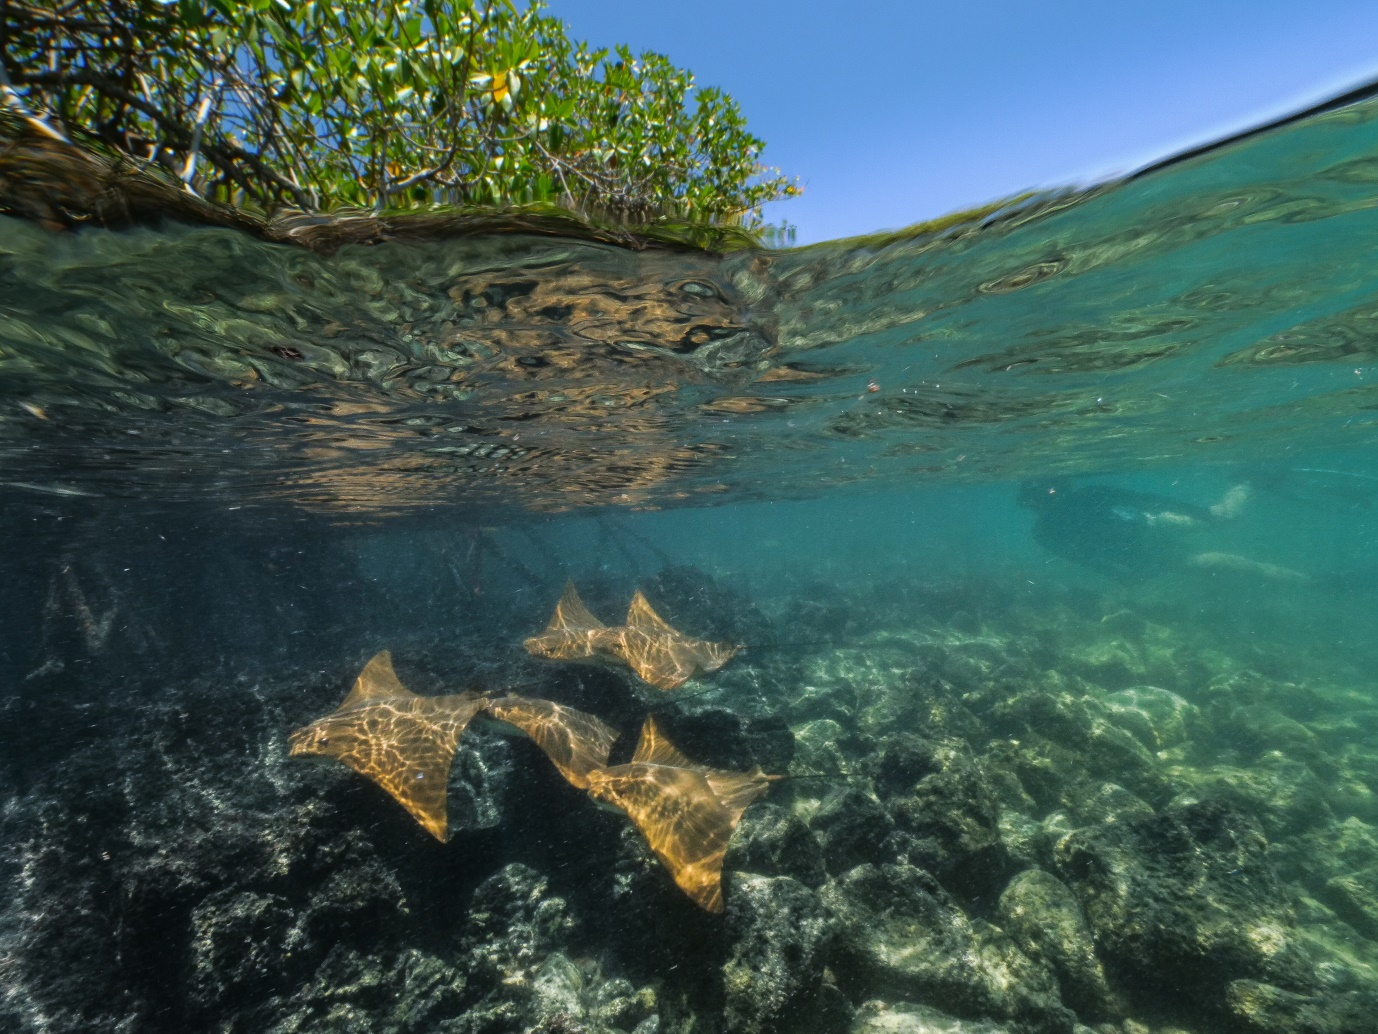 Figure 5.  Snorkelling with golden rays in Galapagos mangrove bays. Photo: Pelayo Salinas de León / Charles Darwin Foundation